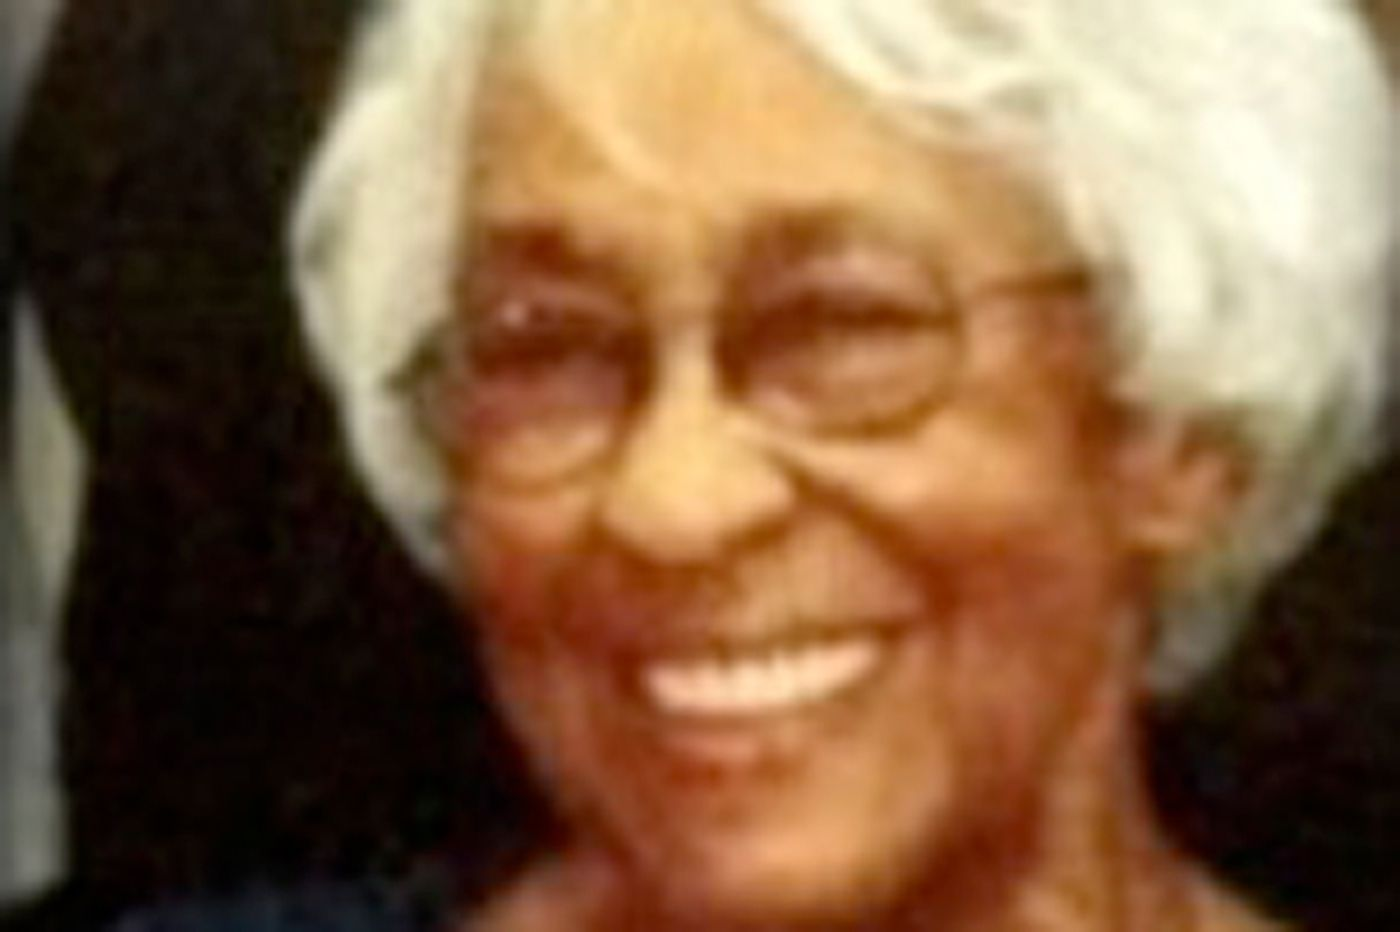 Florence Eubanks; was a reading instructor